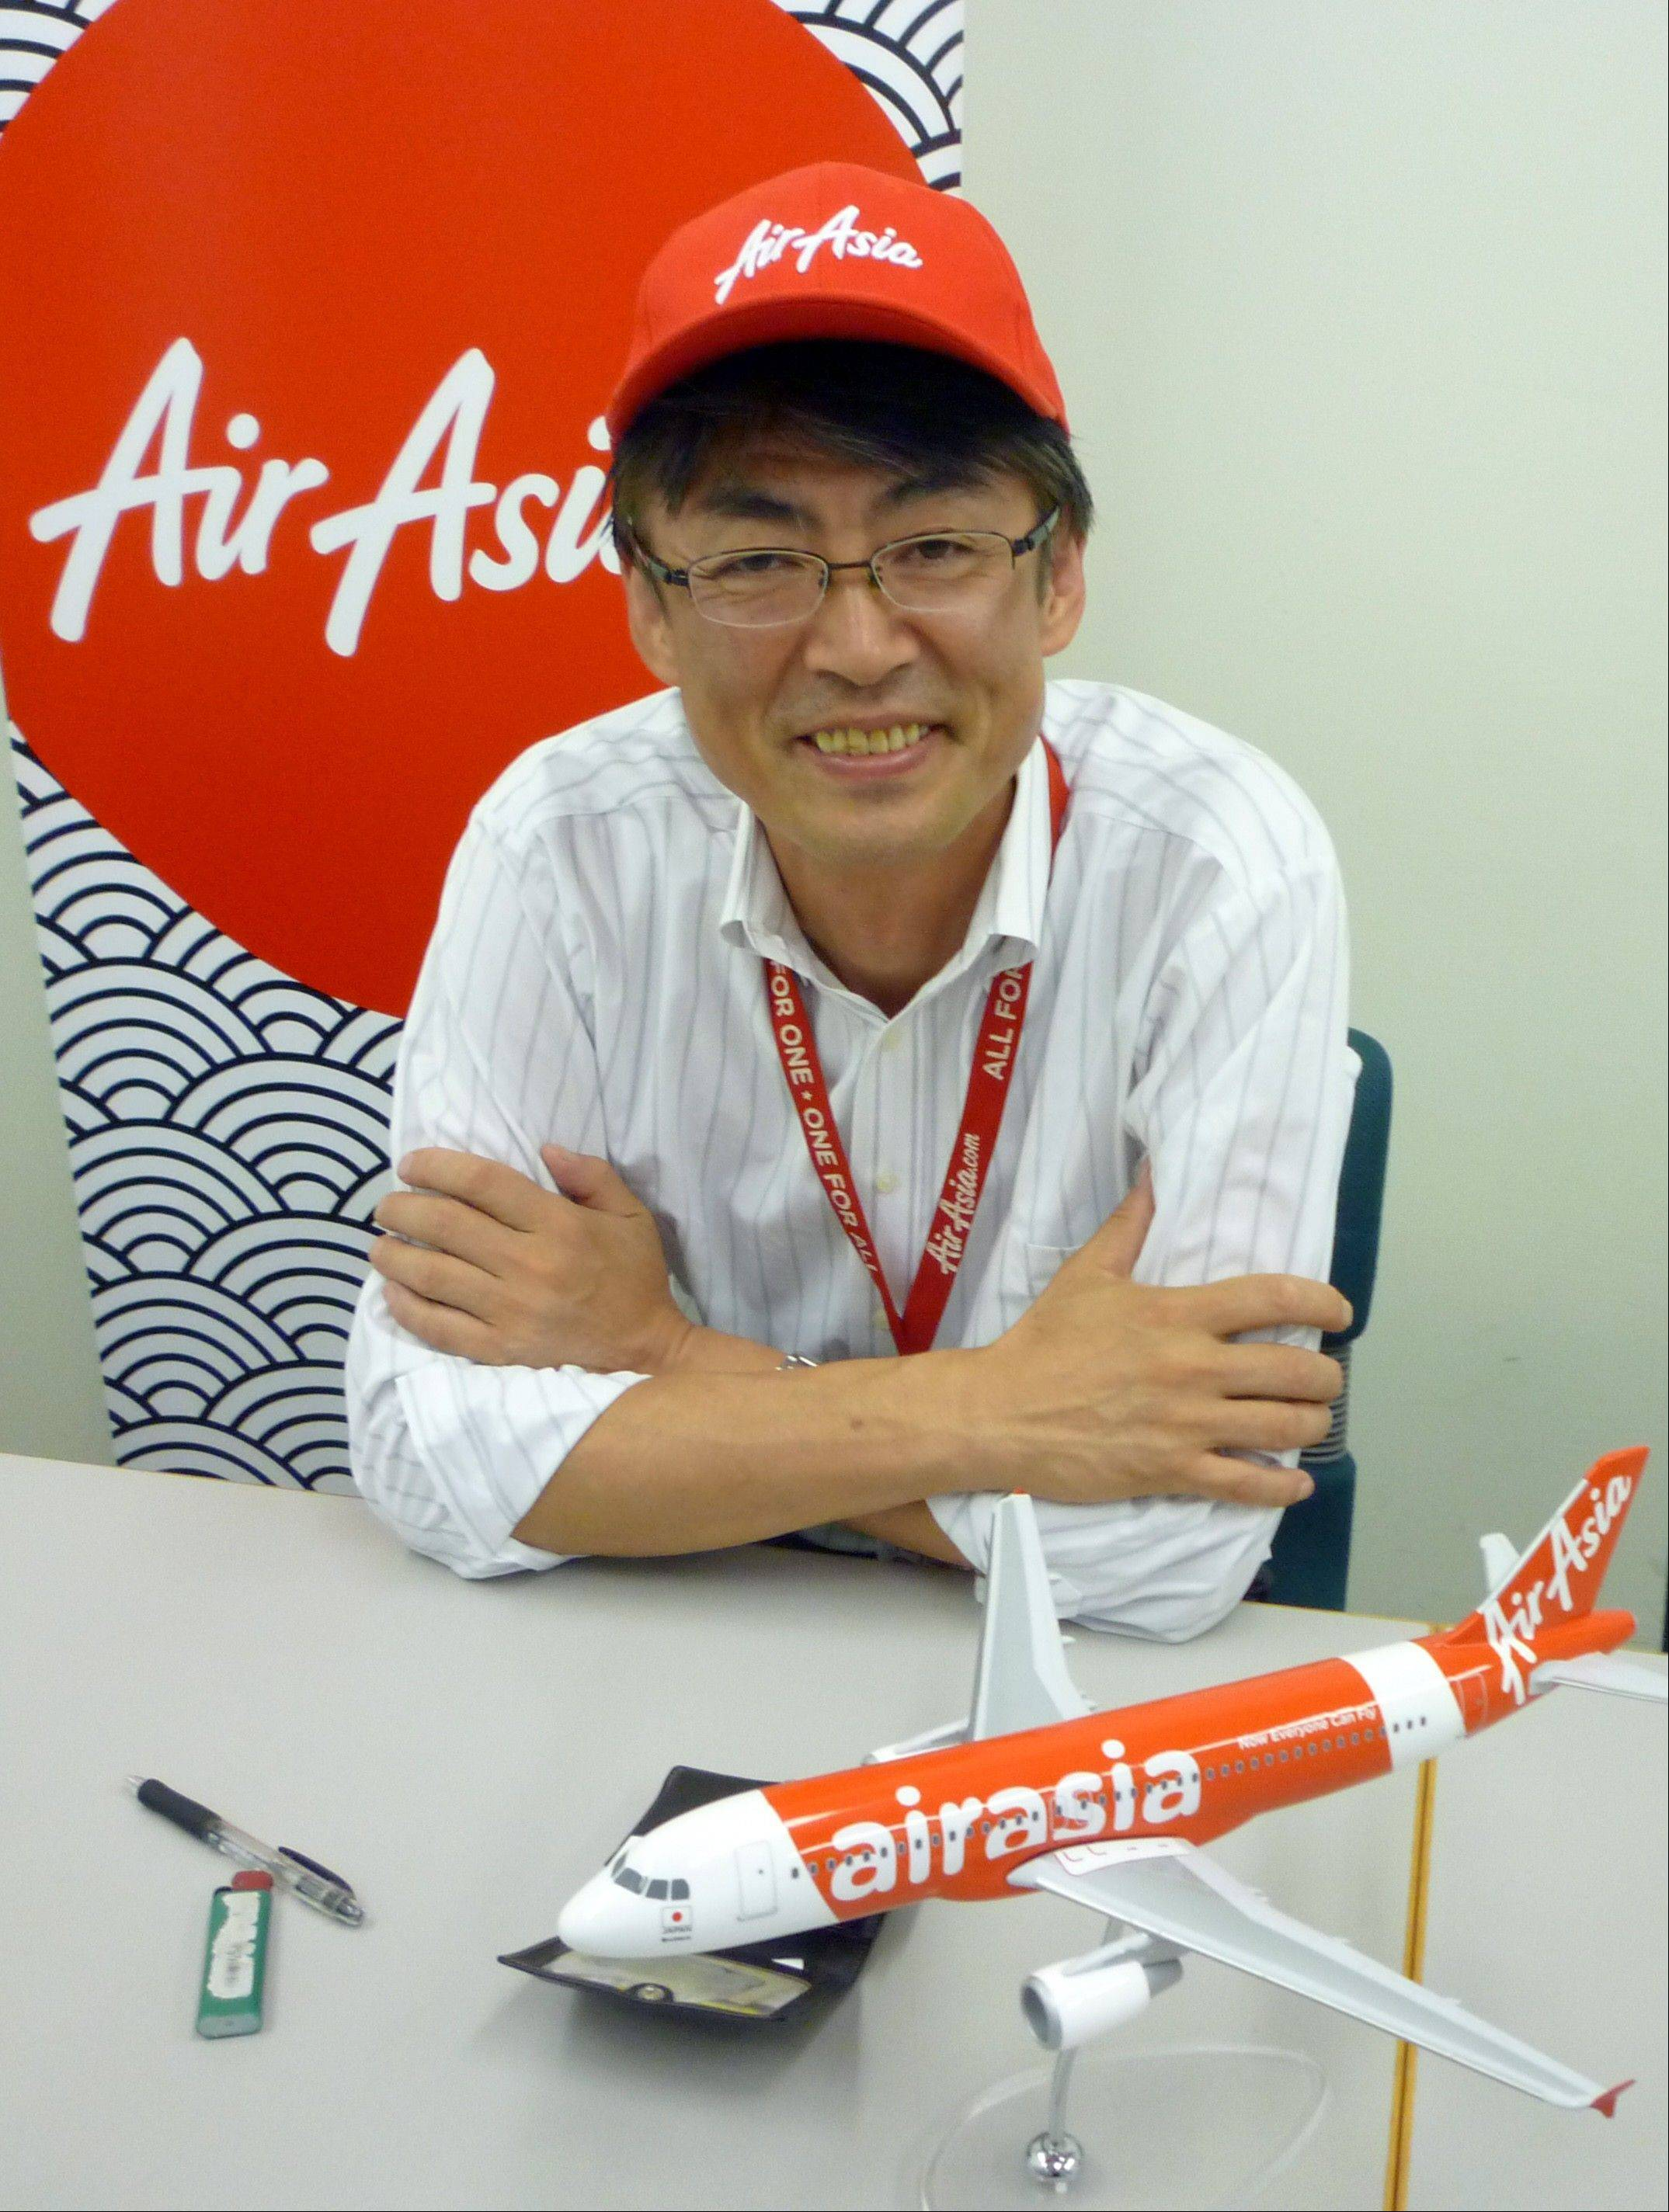 "AirAsia Japan President Kazuyuki Iwakata smiles during an interview in Tokyo. ""It's not that the meals on standard fares were ever free. The charge was just part of the ticket price,"" Iwakata told The Associated Press. ""With us, people pay only for what they need."" As a marketing ploy, AirAsia Japan, which started operations in August, offered tickets for just 5 yen (5 cents) to the first 10,000 people. They quickly sold out."